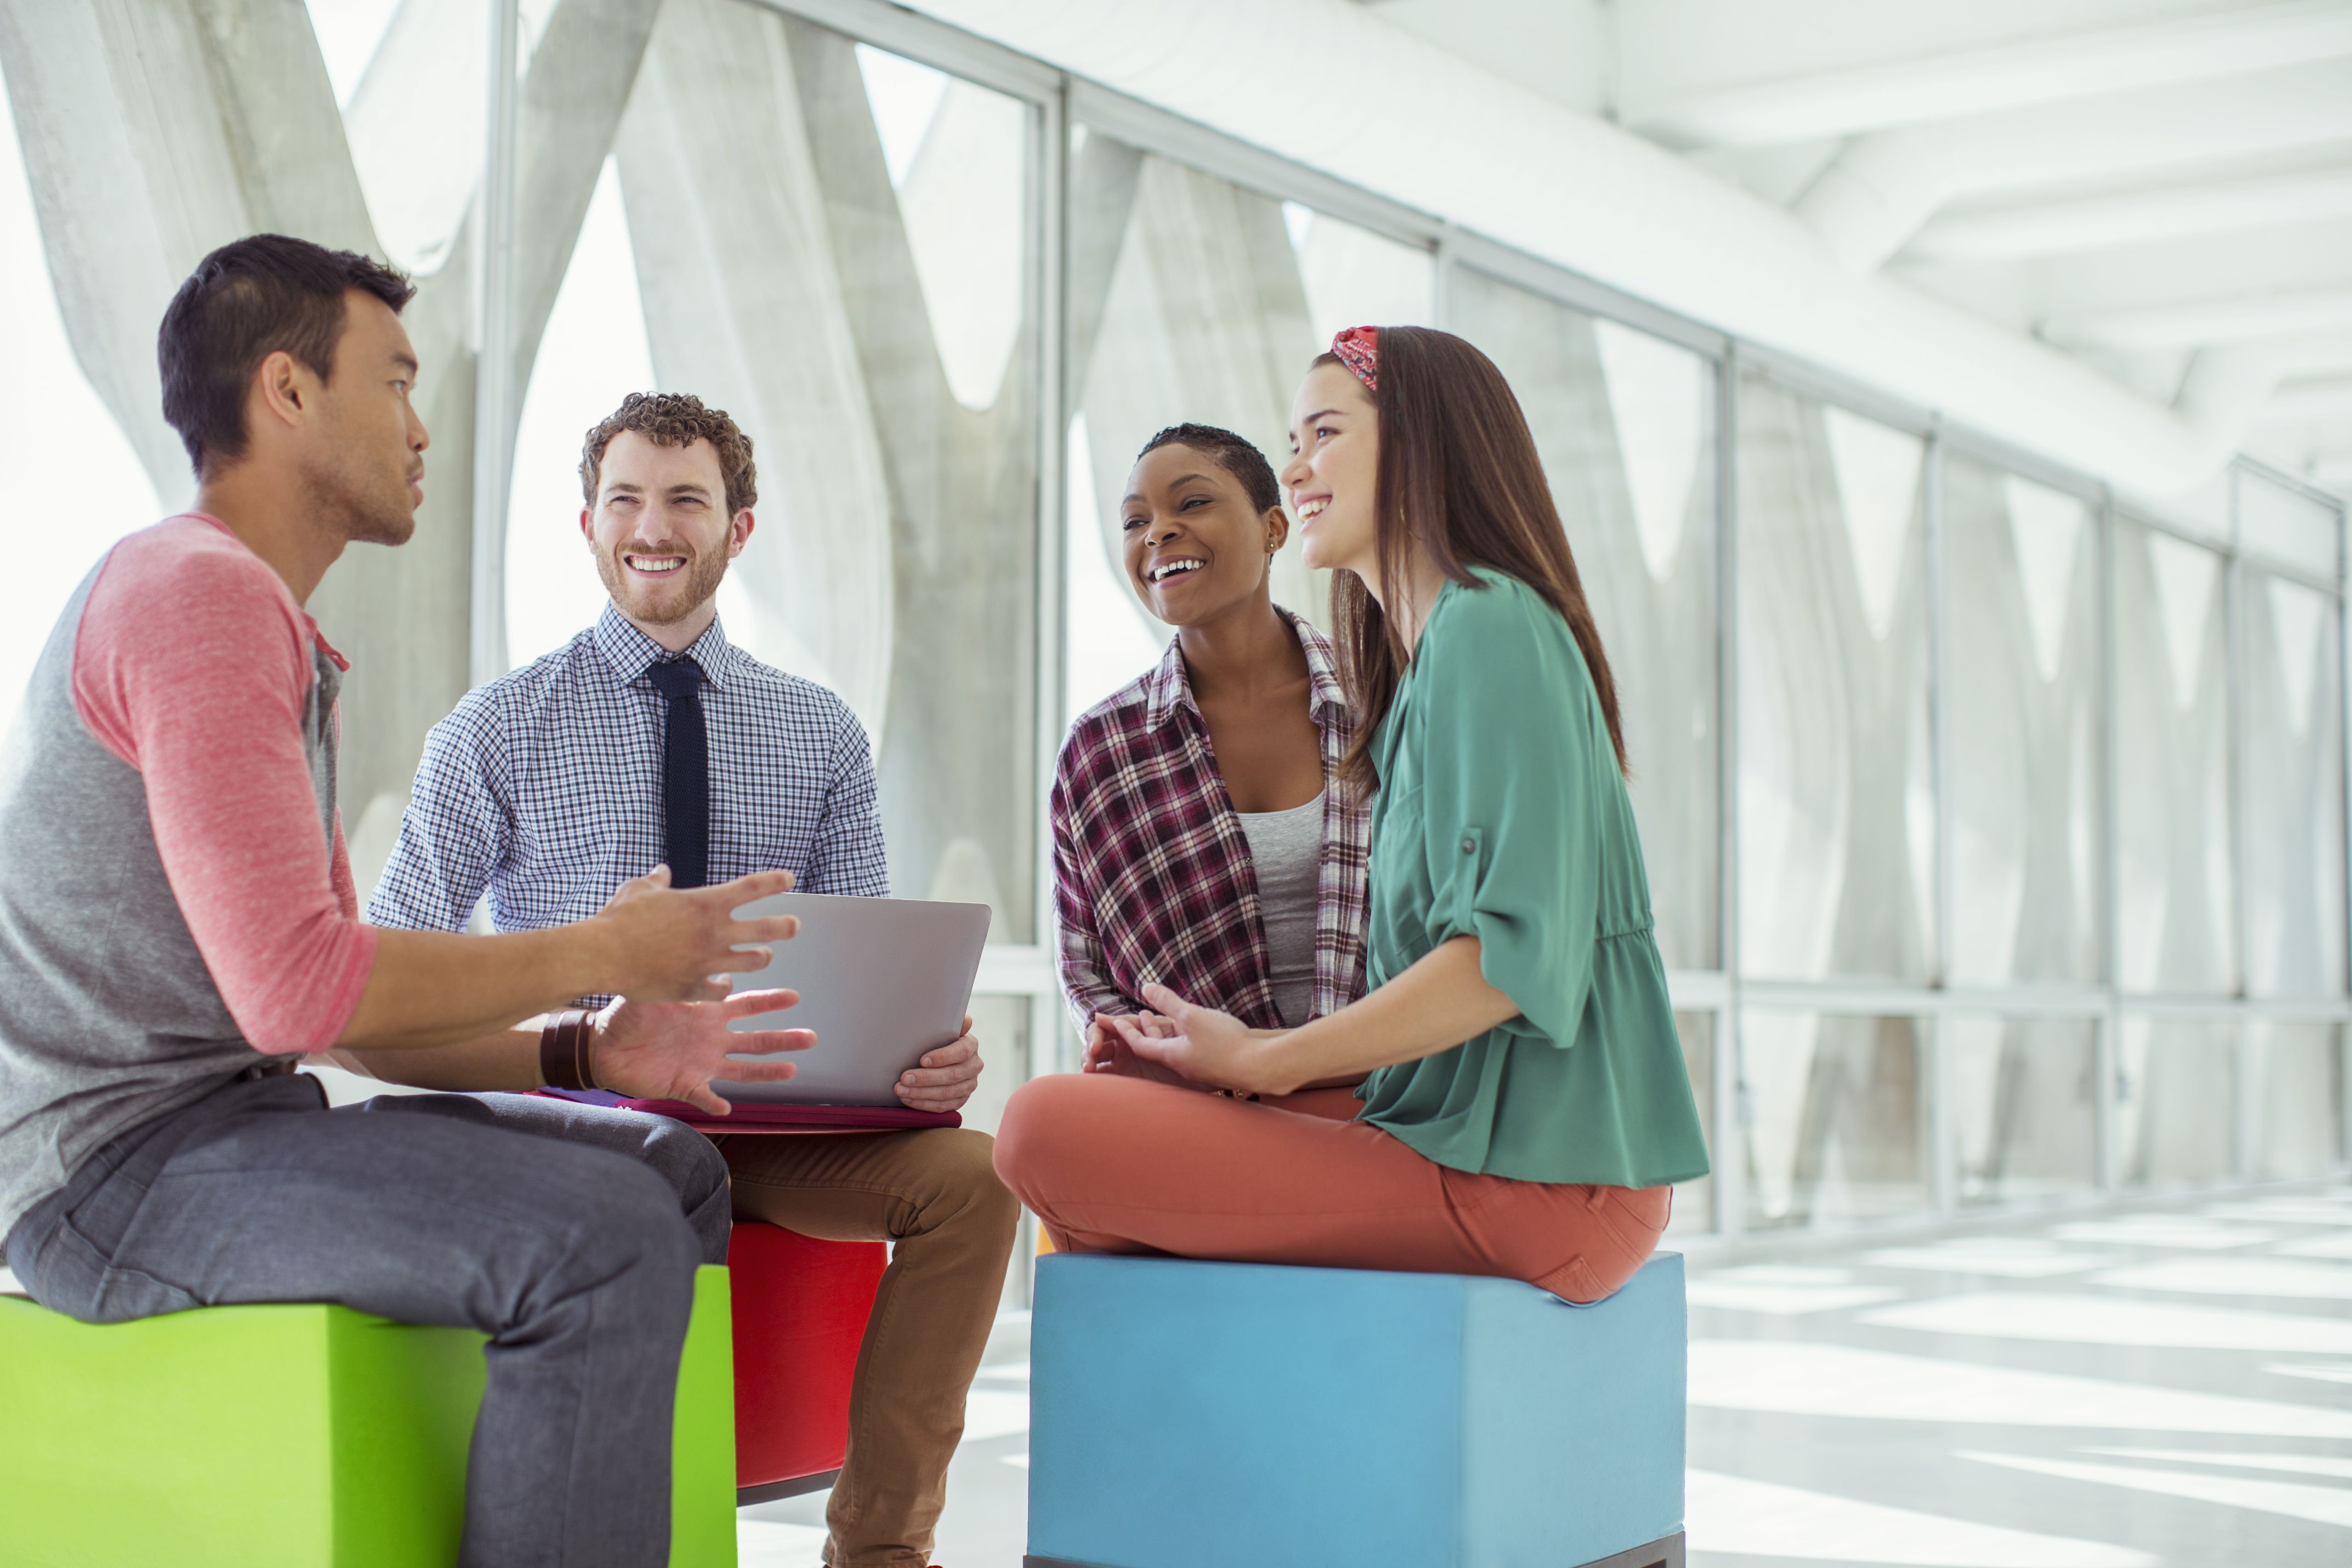 Four business people meeting on colorful stools